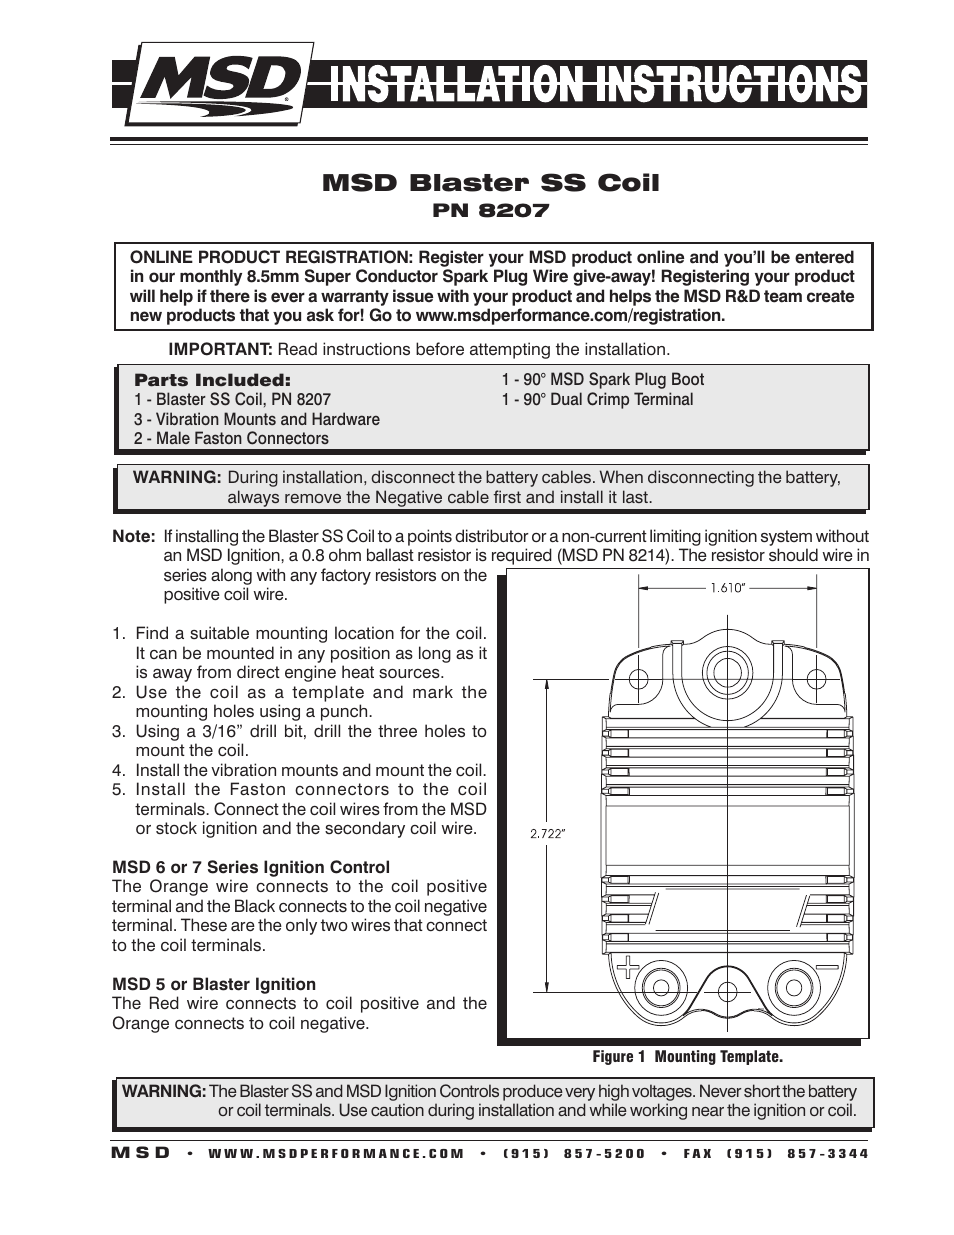 msd blaster coil wiring diagram msd image wiring msd blaster ss wiring diagram wiring diagram and hernes on msd blaster coil wiring diagram